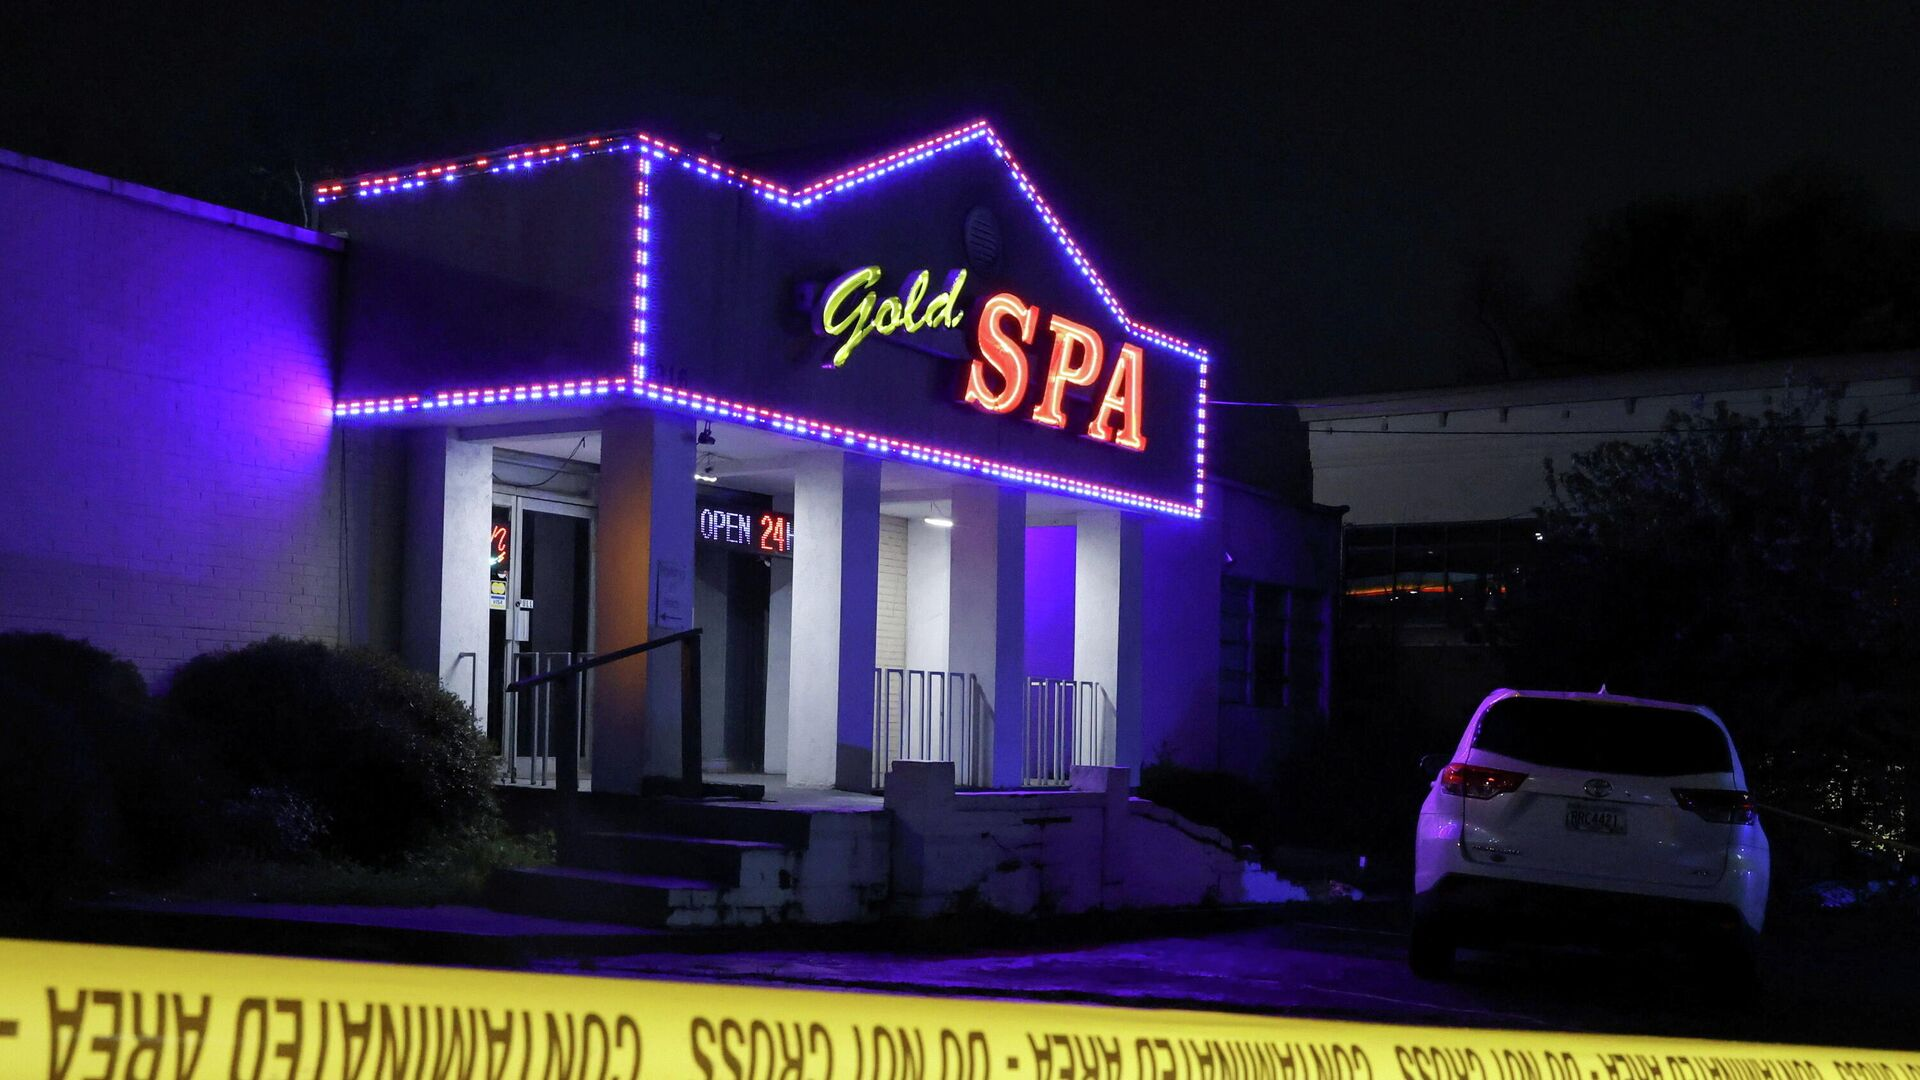 Crime scene tape surrounds Gold Spa after deadly shootings at a massage parlor and two day spas in the Atlanta area, in Atlanta, Georgia, U.S. March 16, 2021 - Sputnik International, 1920, 28.09.2021